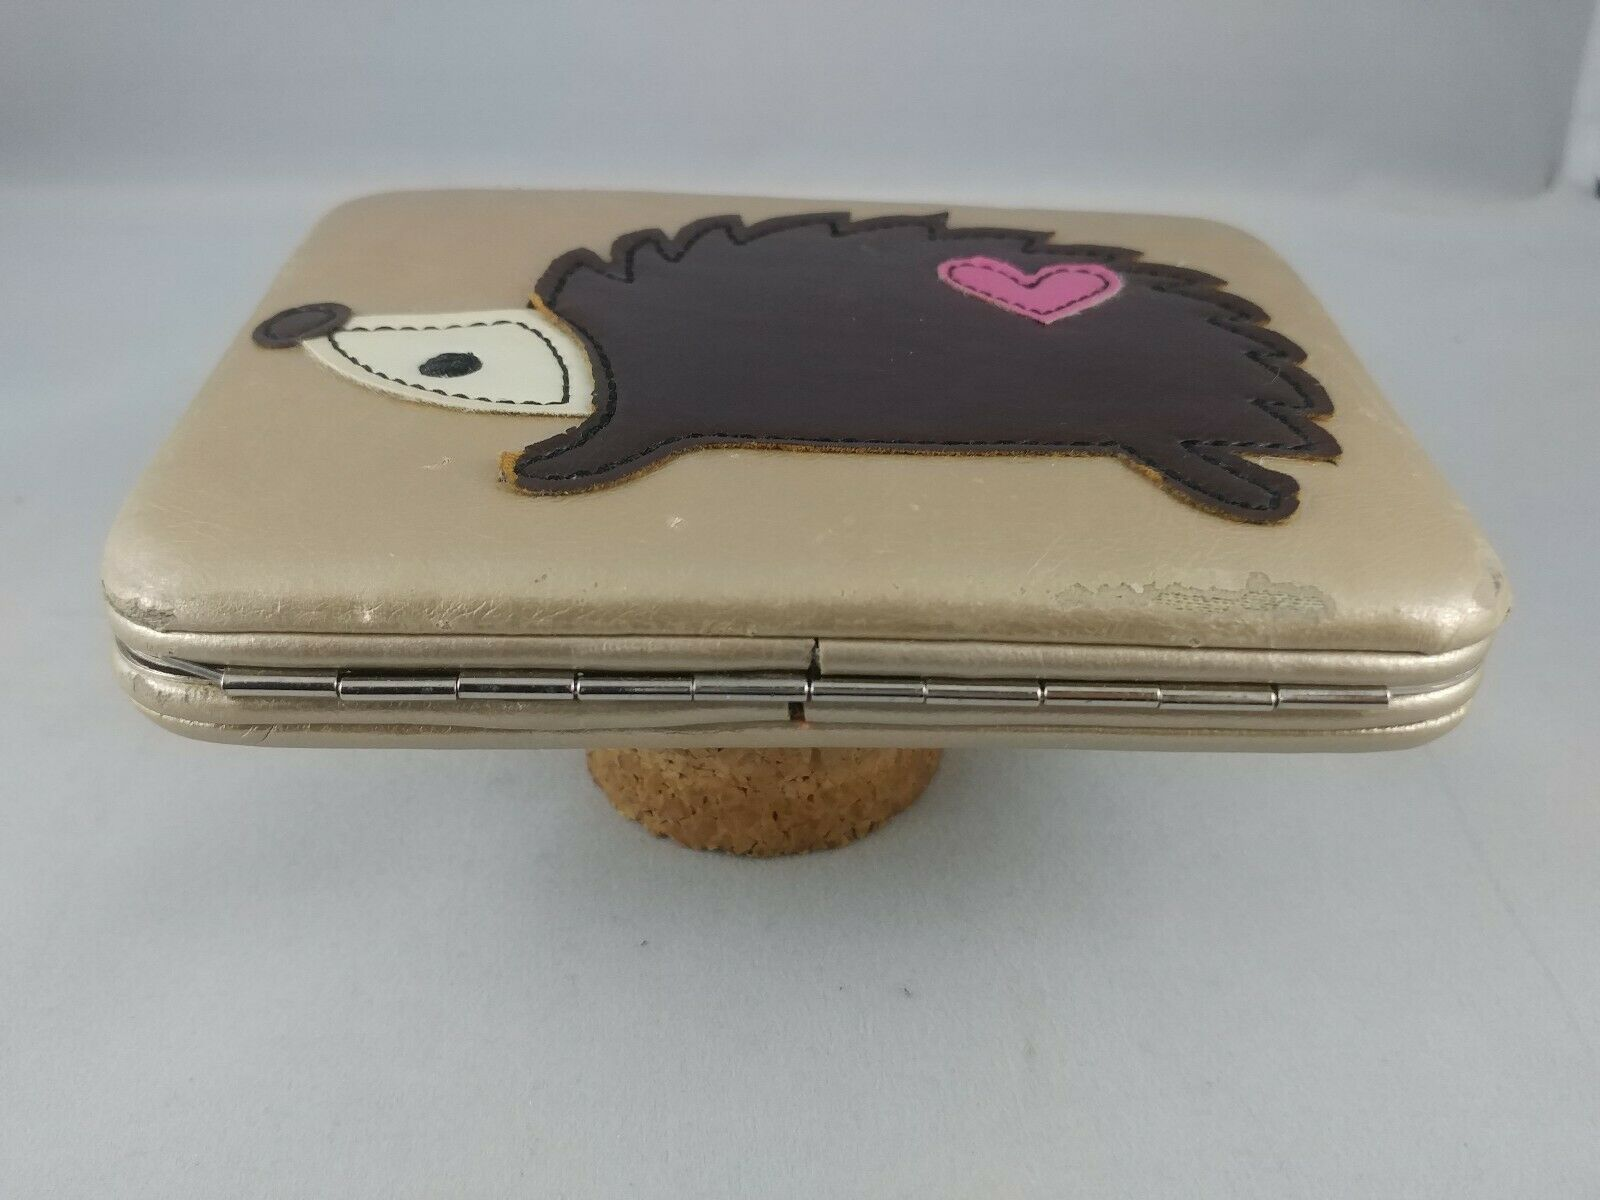 Hedgehog Heart Wallet Gold Hardshell Leather Clasp ADORABLE! Pre-owned